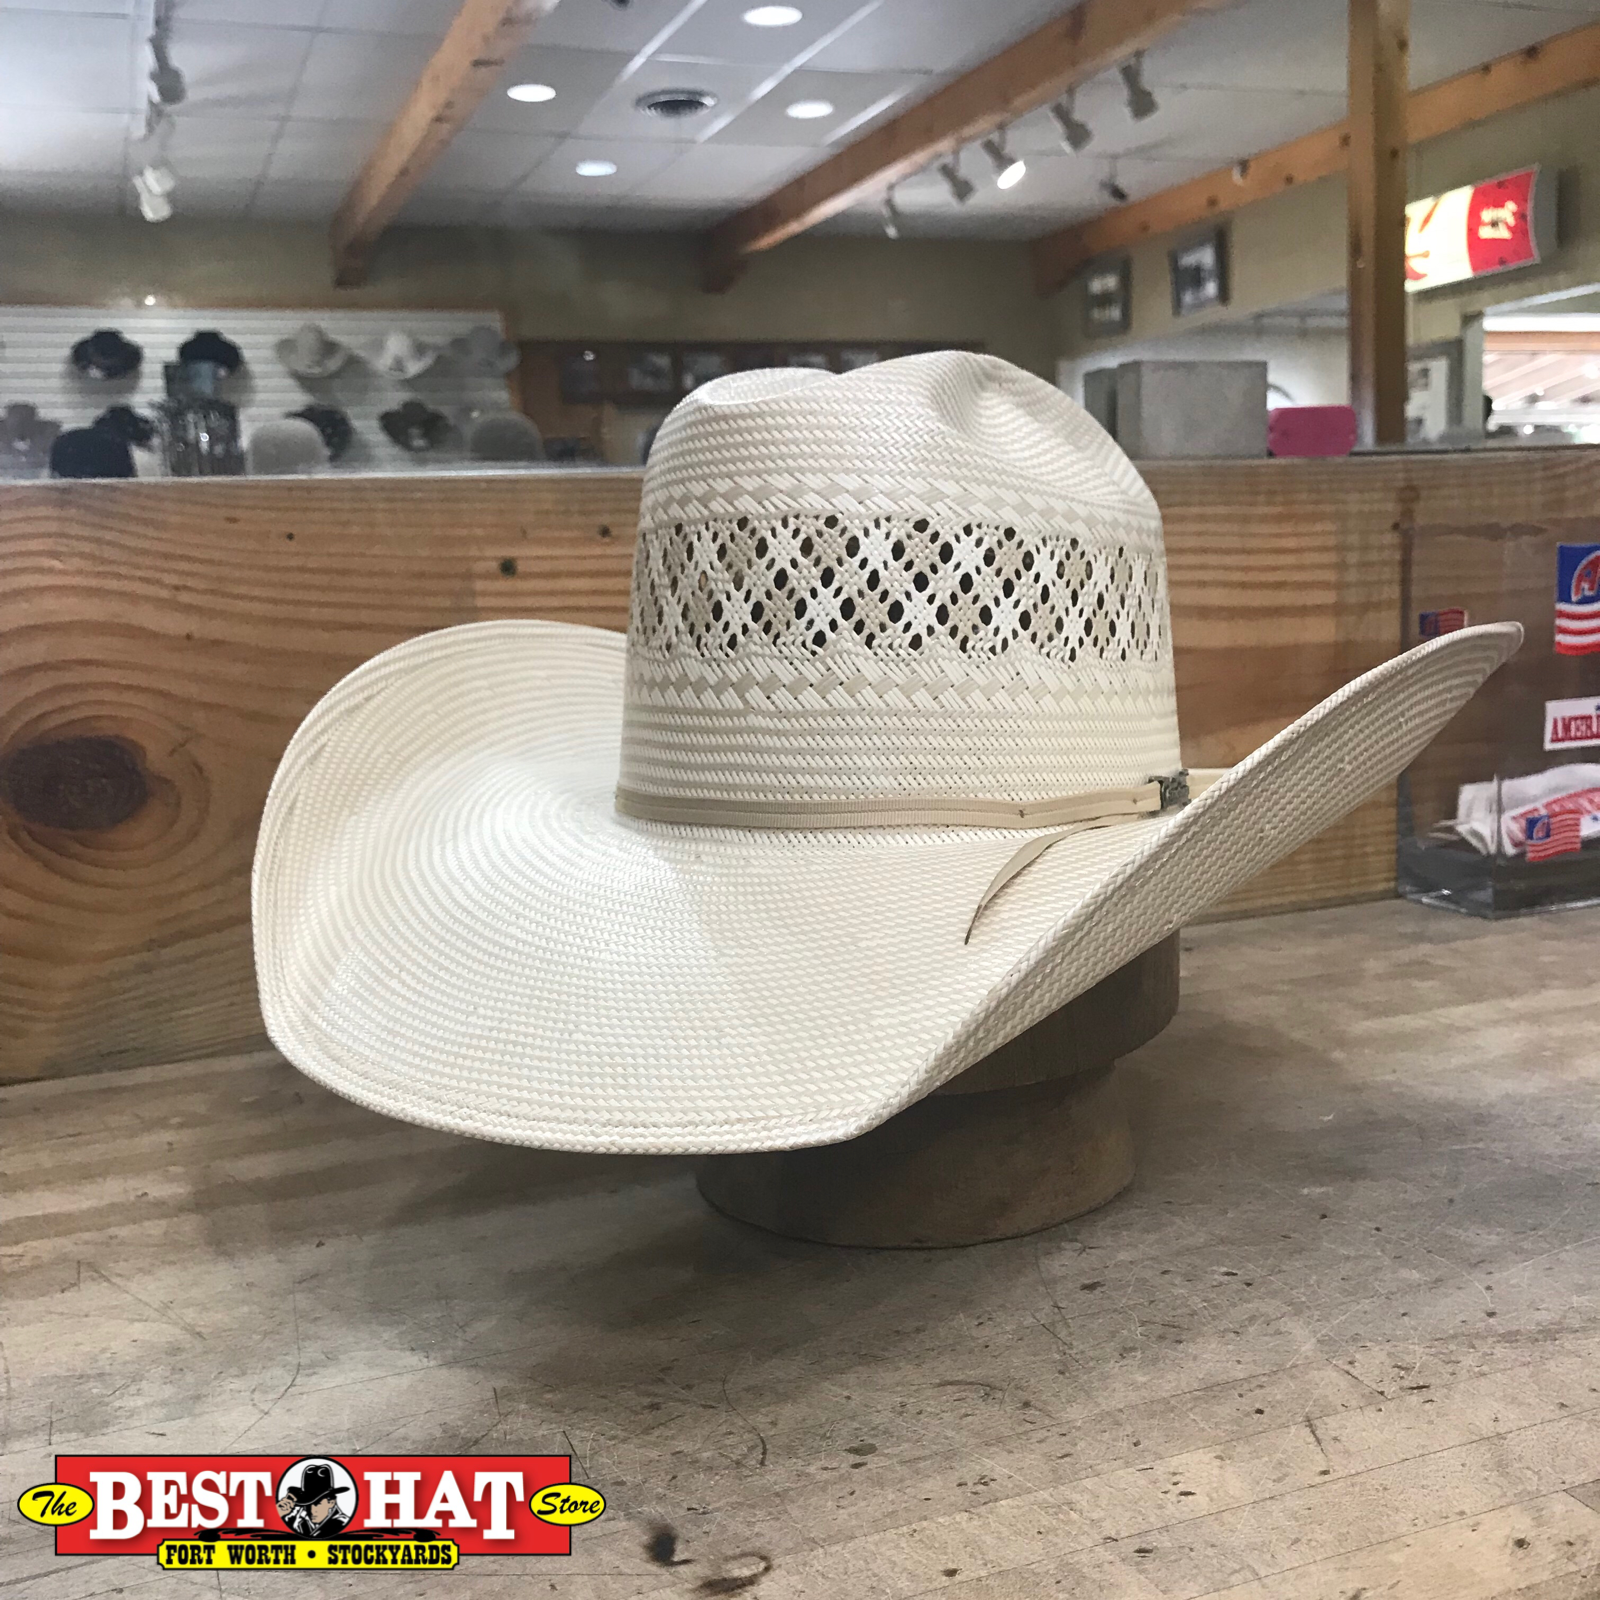 7f762eba58fffd Come getcha the 1011 with a 4 1/2 brim cattleman with cutter bumps 🔥🔥🔥  ...#besthat #besthatstore #thebesthatstore#americanhatco ...